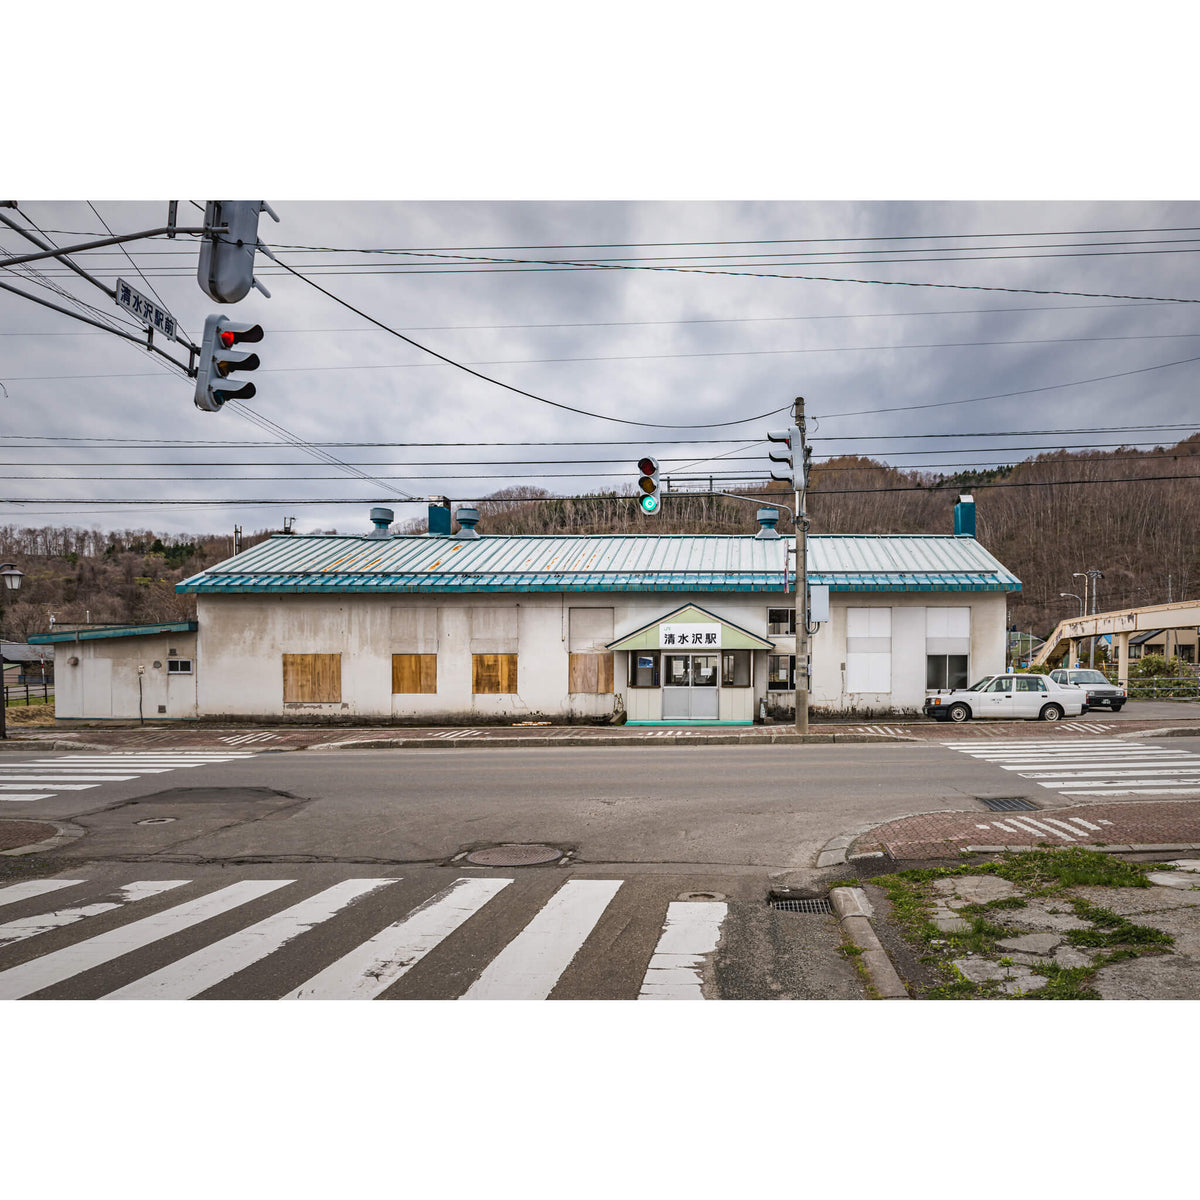 Shimizusawa Station | Streetscapes of Yubari